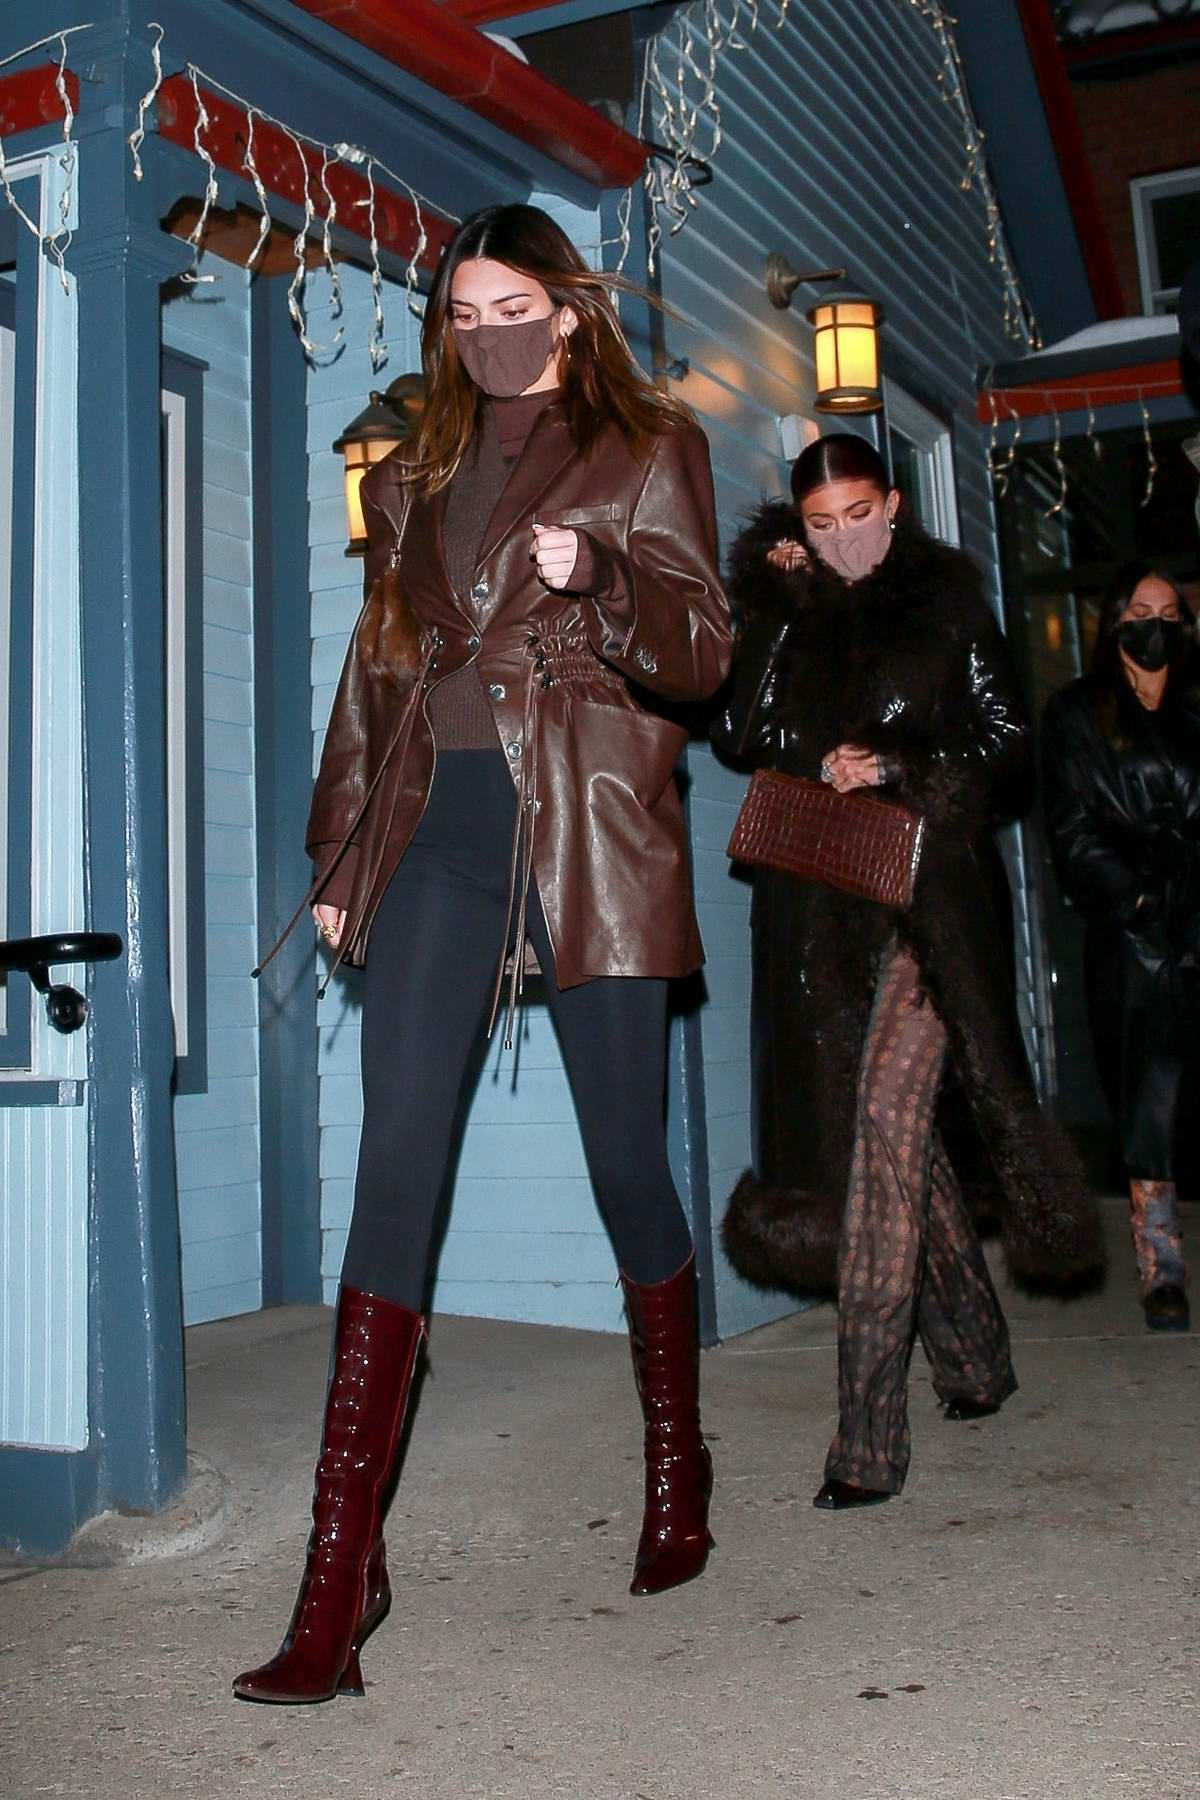 Kendall Jenner and Kylie Jenner keep it stylish as they step out for dinner with their mother Kris in Aspen, Colorado